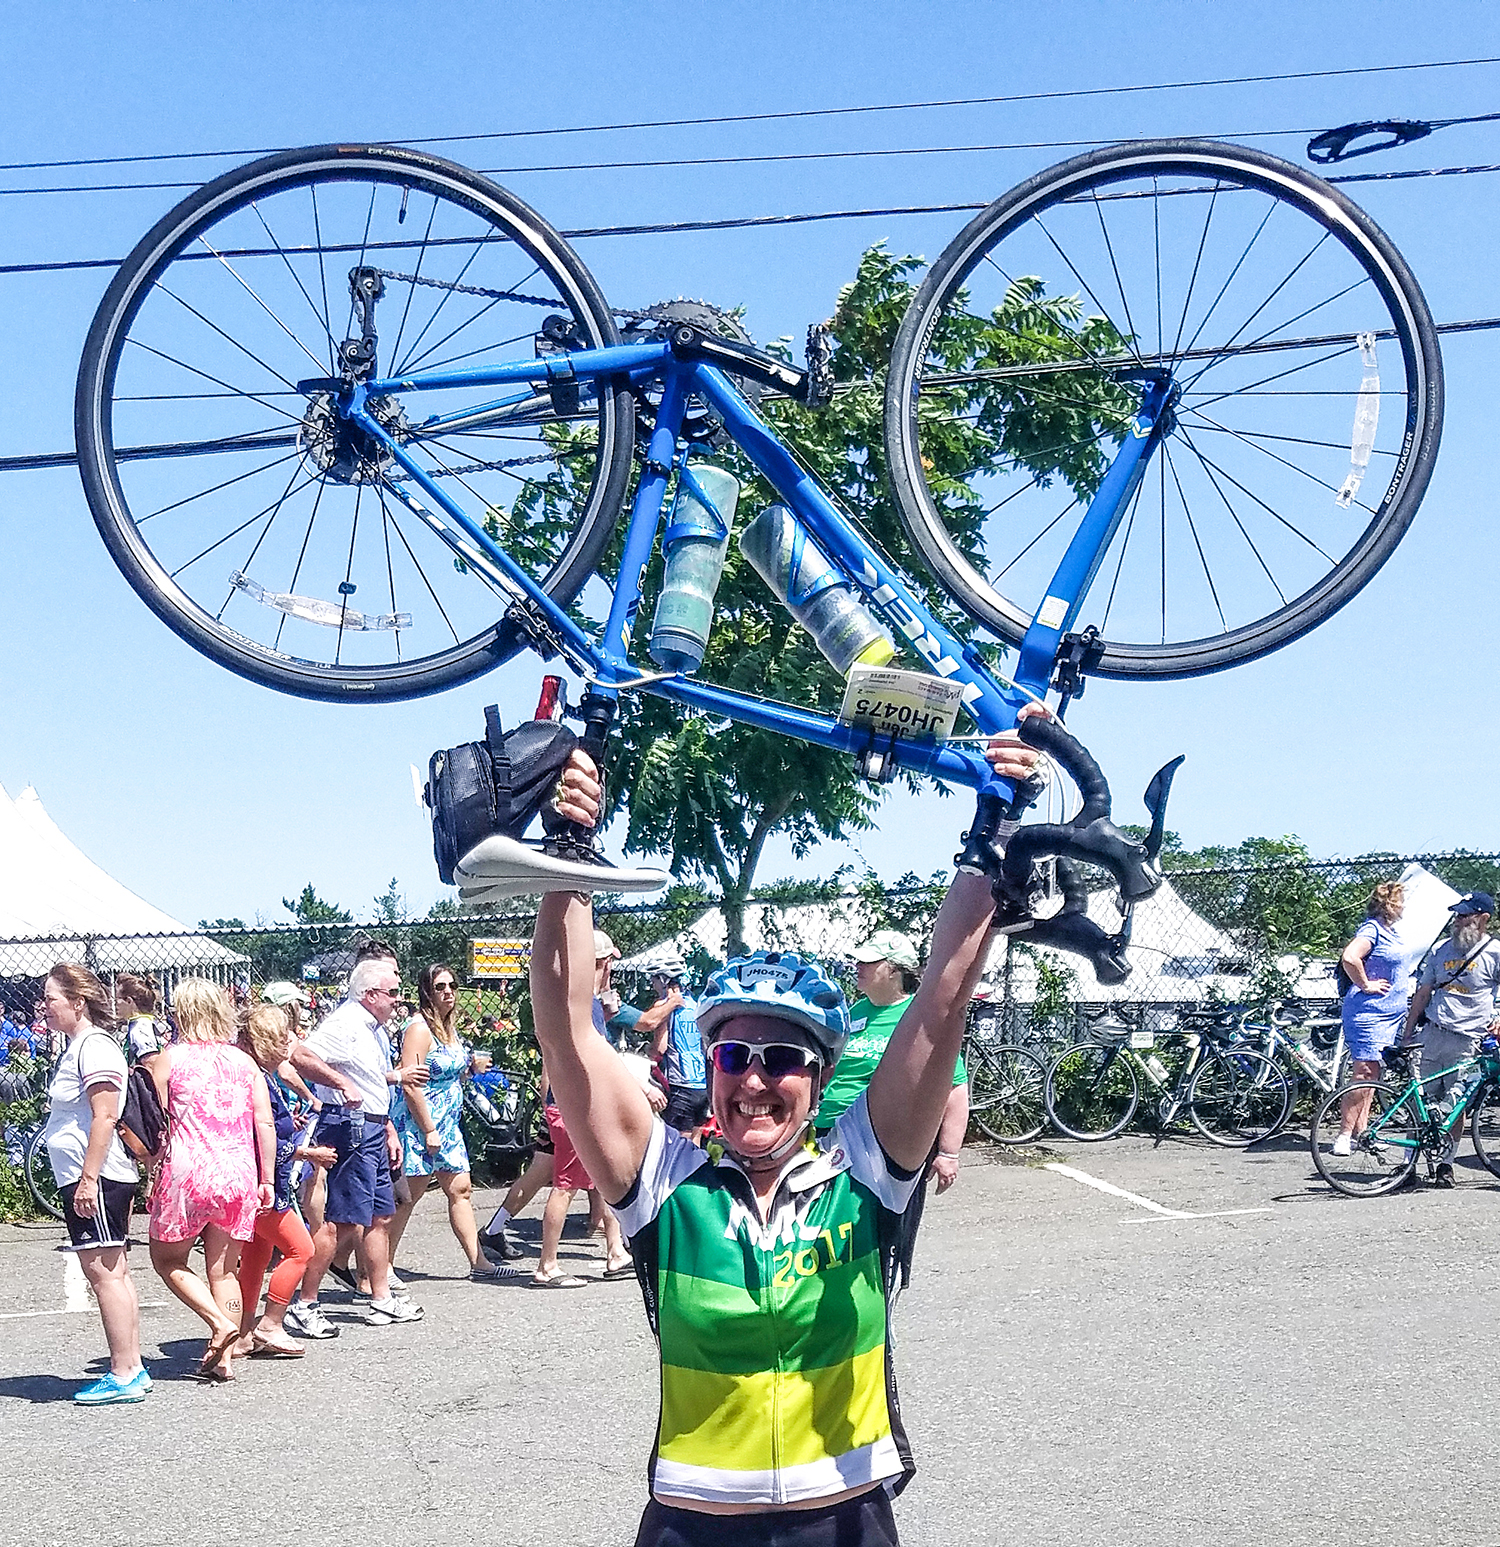 Celebrating at the finish line of the 2017 Pan-Mass Challenge.